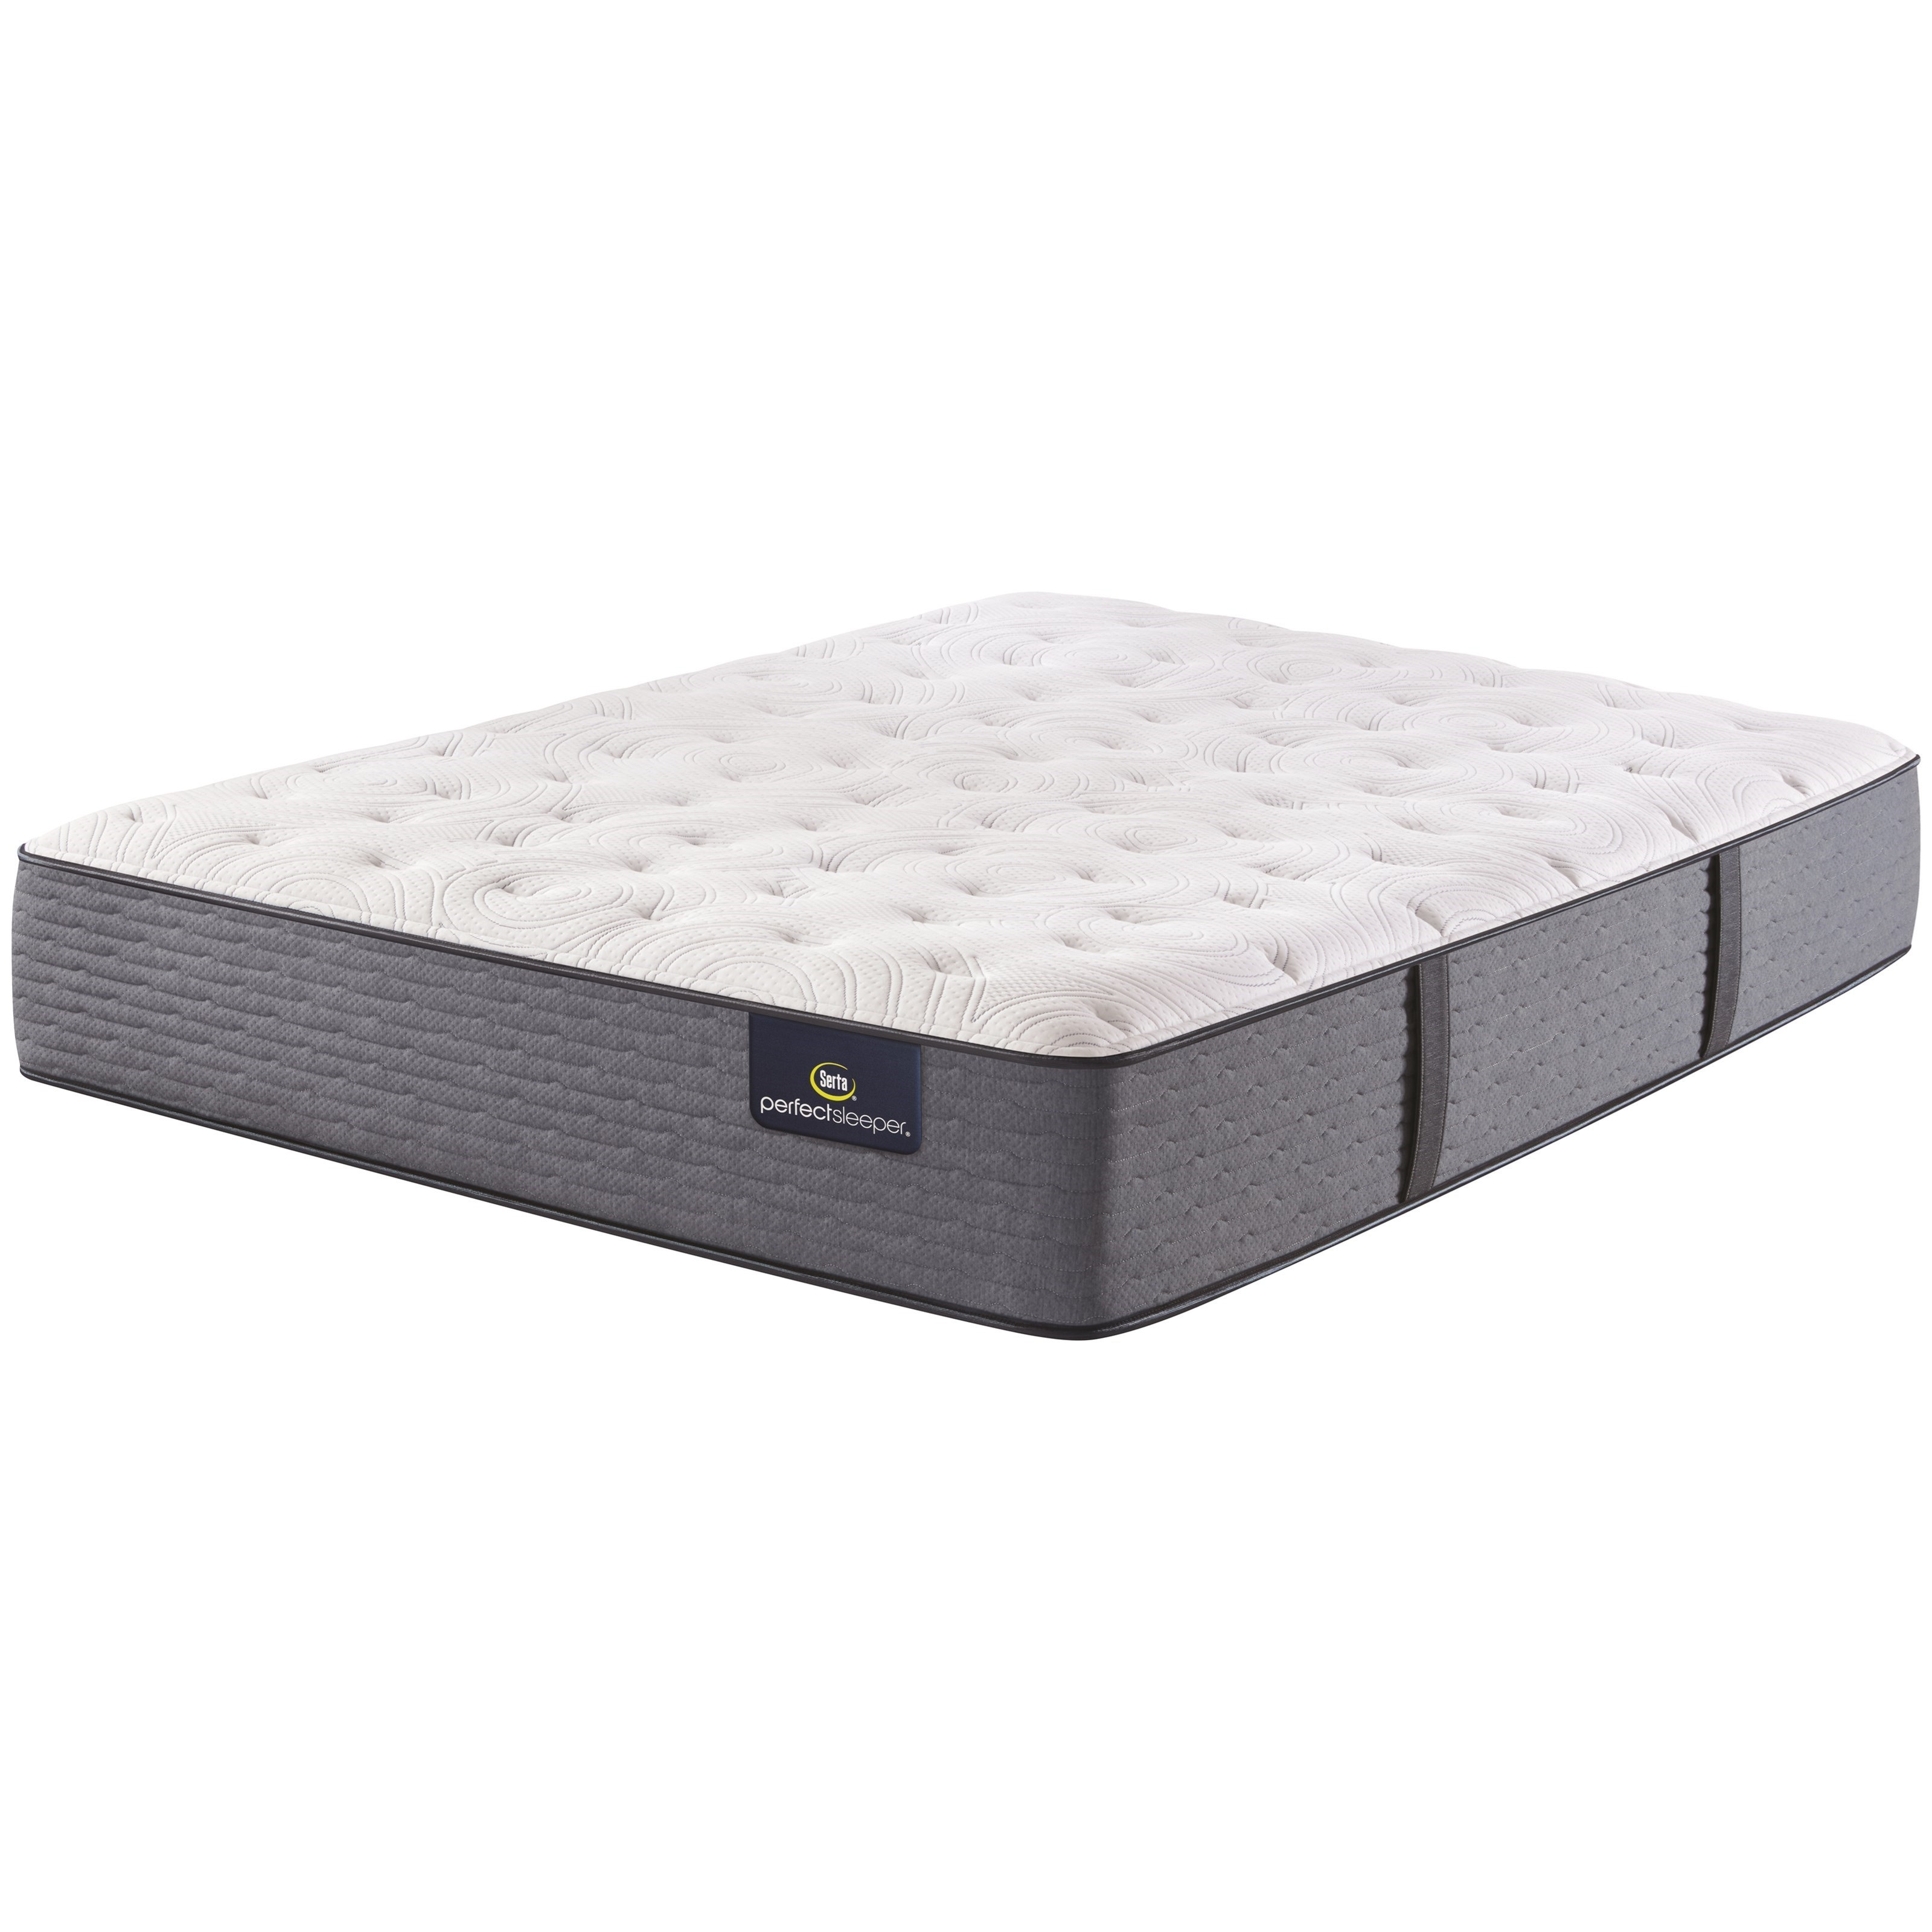 "Chastain Full 13"" Extra Firm Mattress by Serta at Morris Home"